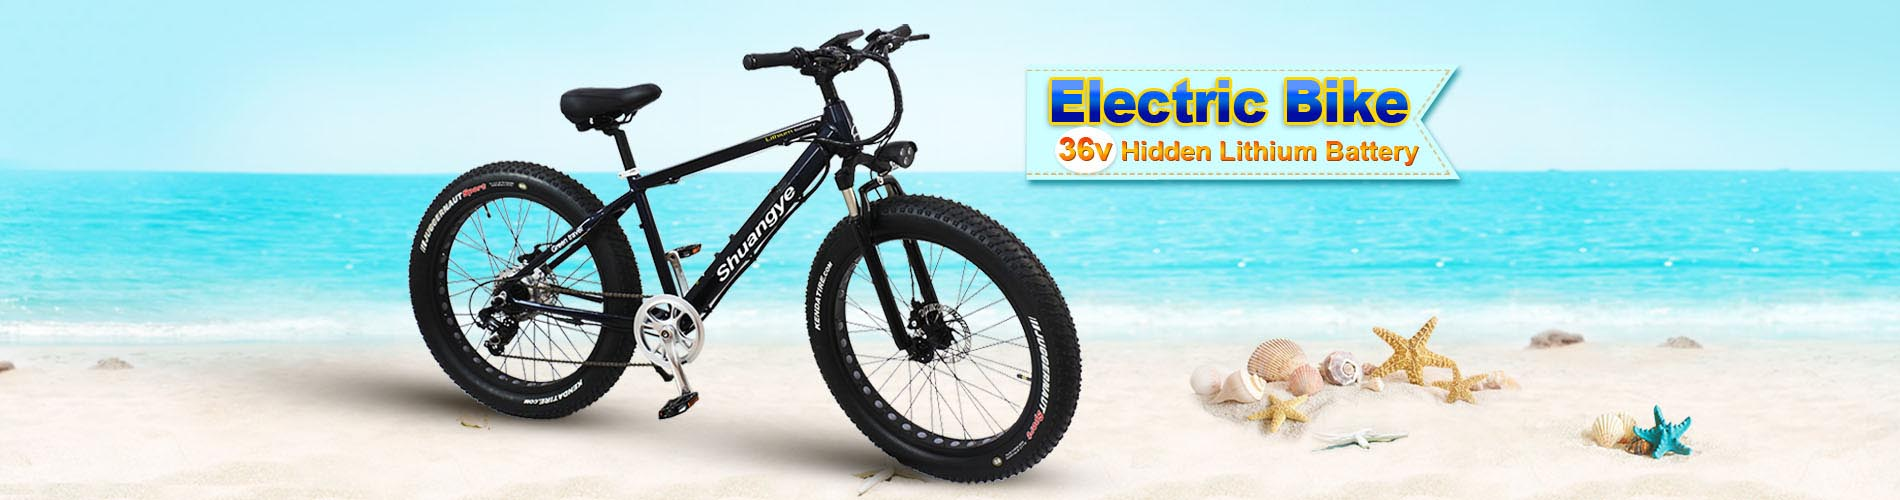 36v lightweight folding electric bike most portable folding bike